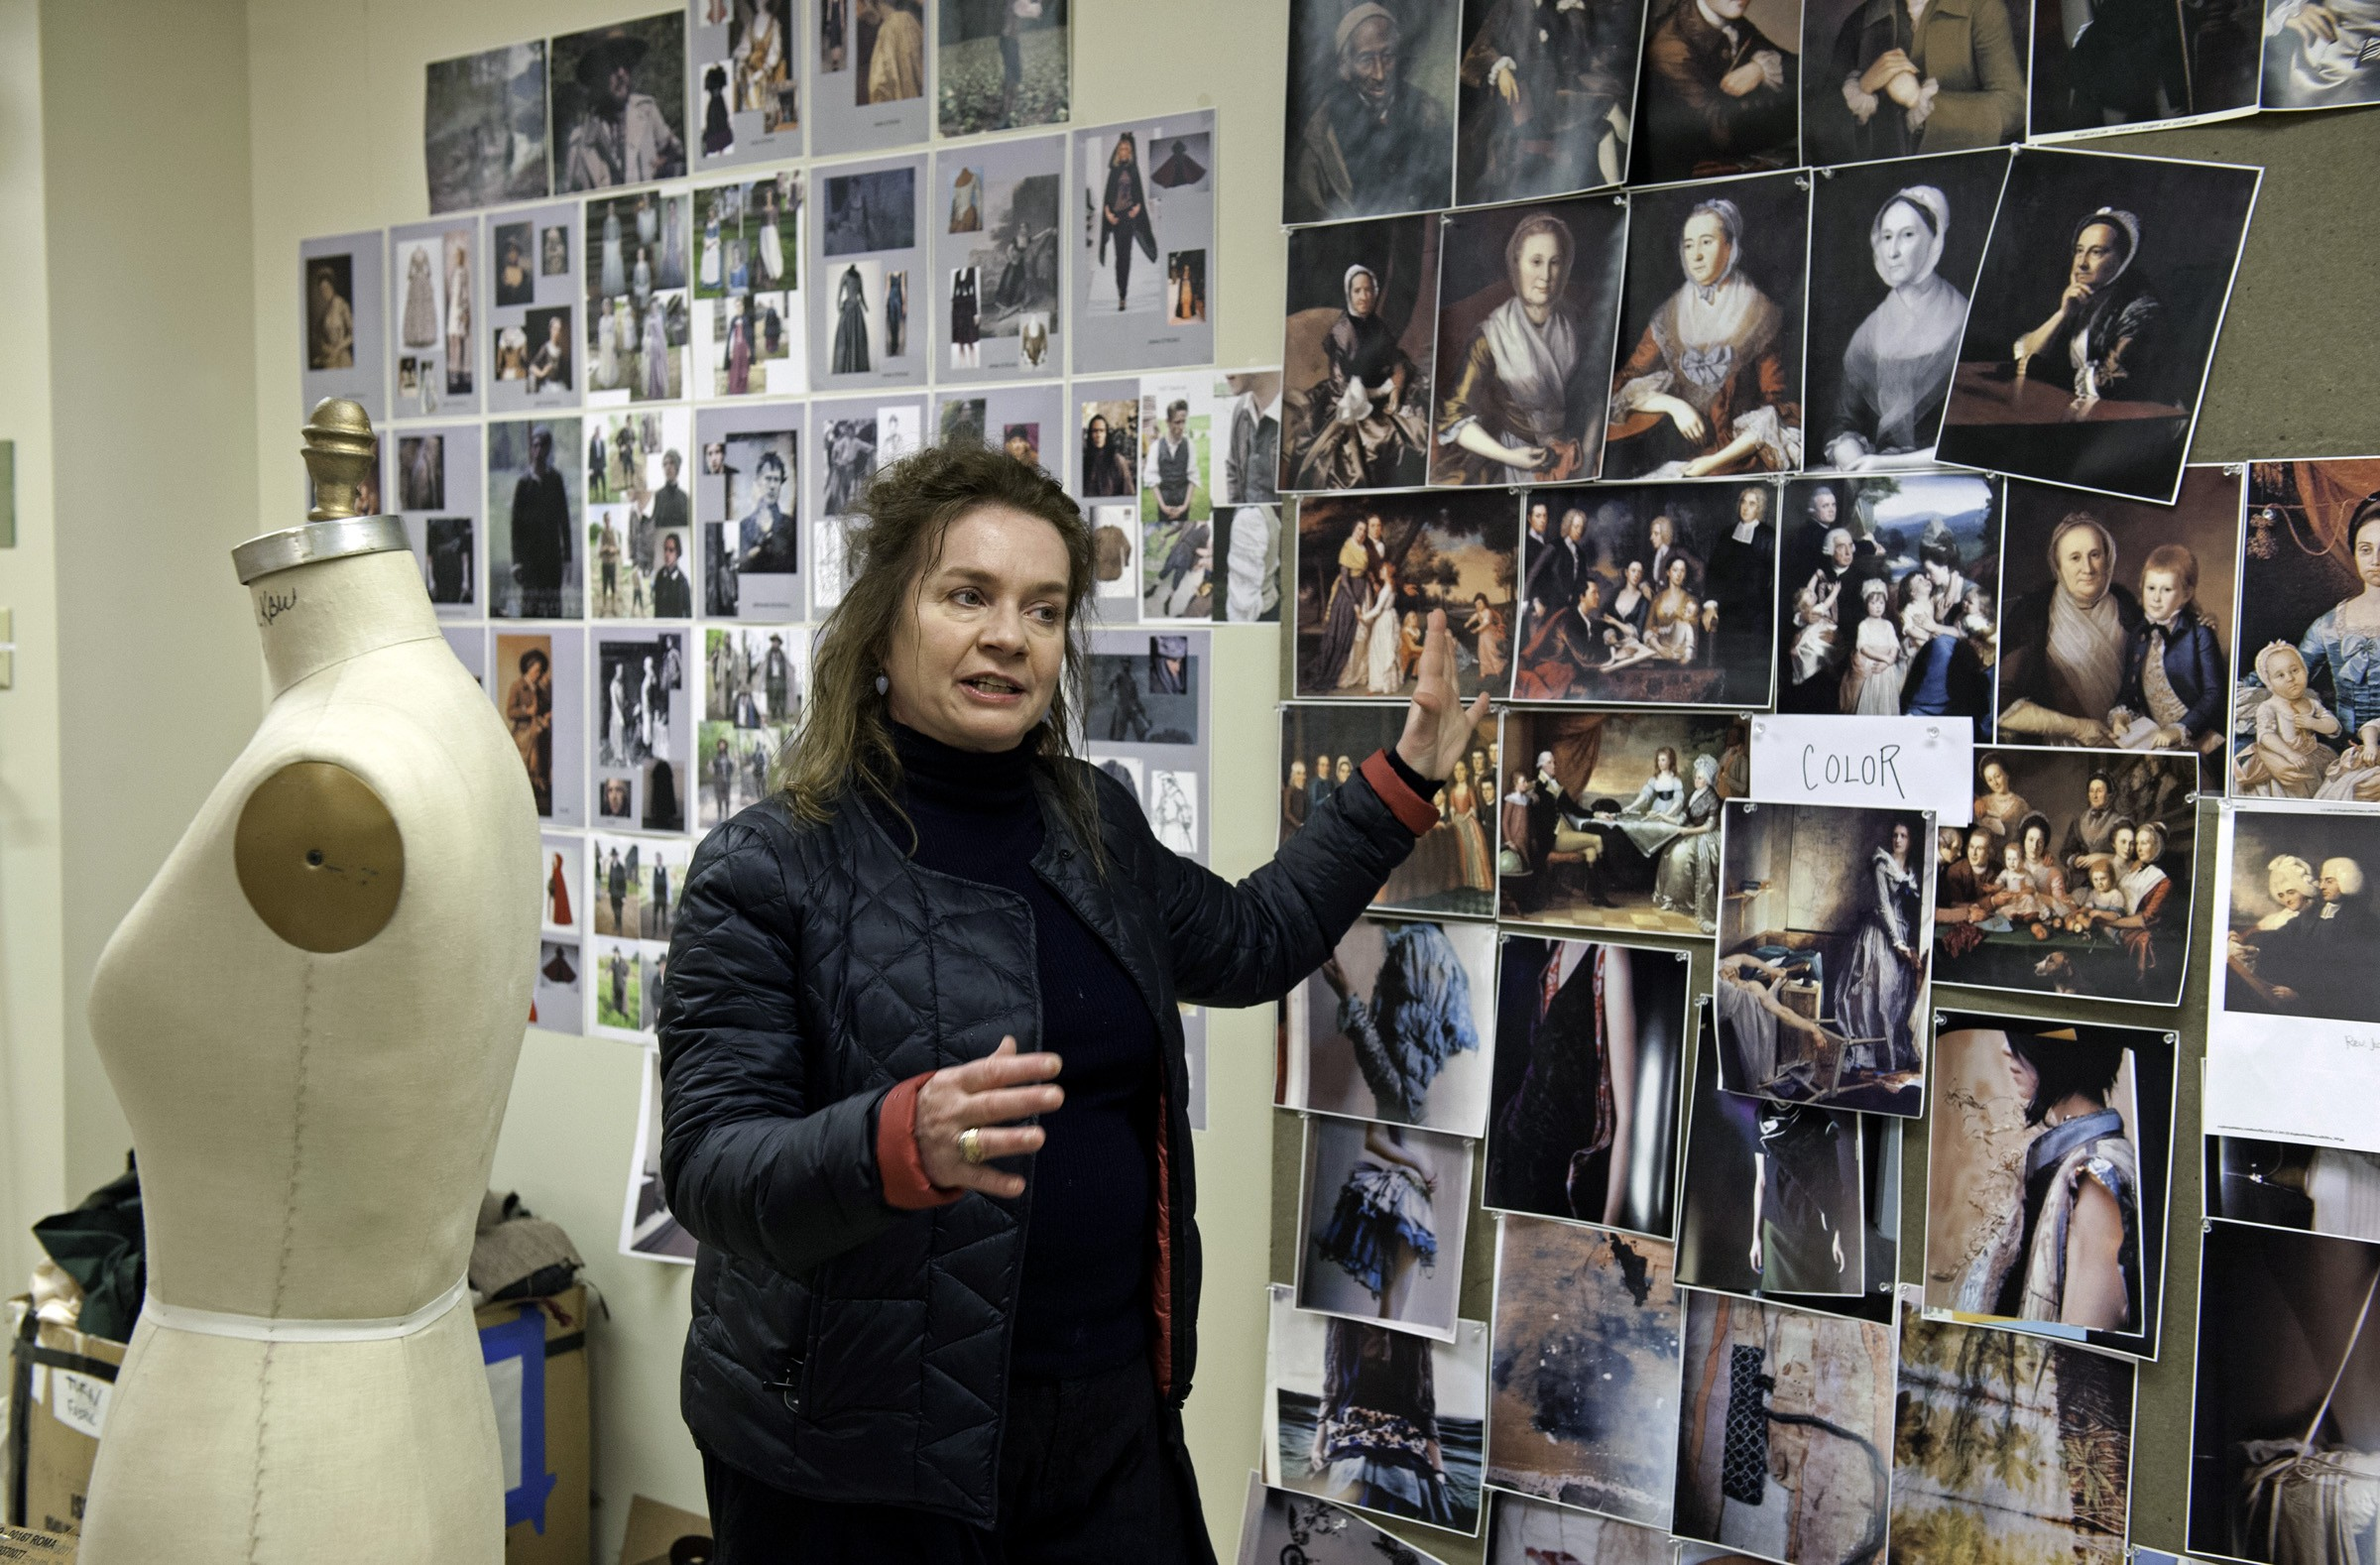 """Costume Designer Donna Zakowska, who won an Emmy for her work on HBO's """"John Adams"""" — also shot in Virginia — offers a tour of her workshop in a warehouse near the Richmond International Raceway. Despite the show's time period, she says, it offers a """"very contemporary statement"""" about young people making change. - SCOTT ELMQUIST"""